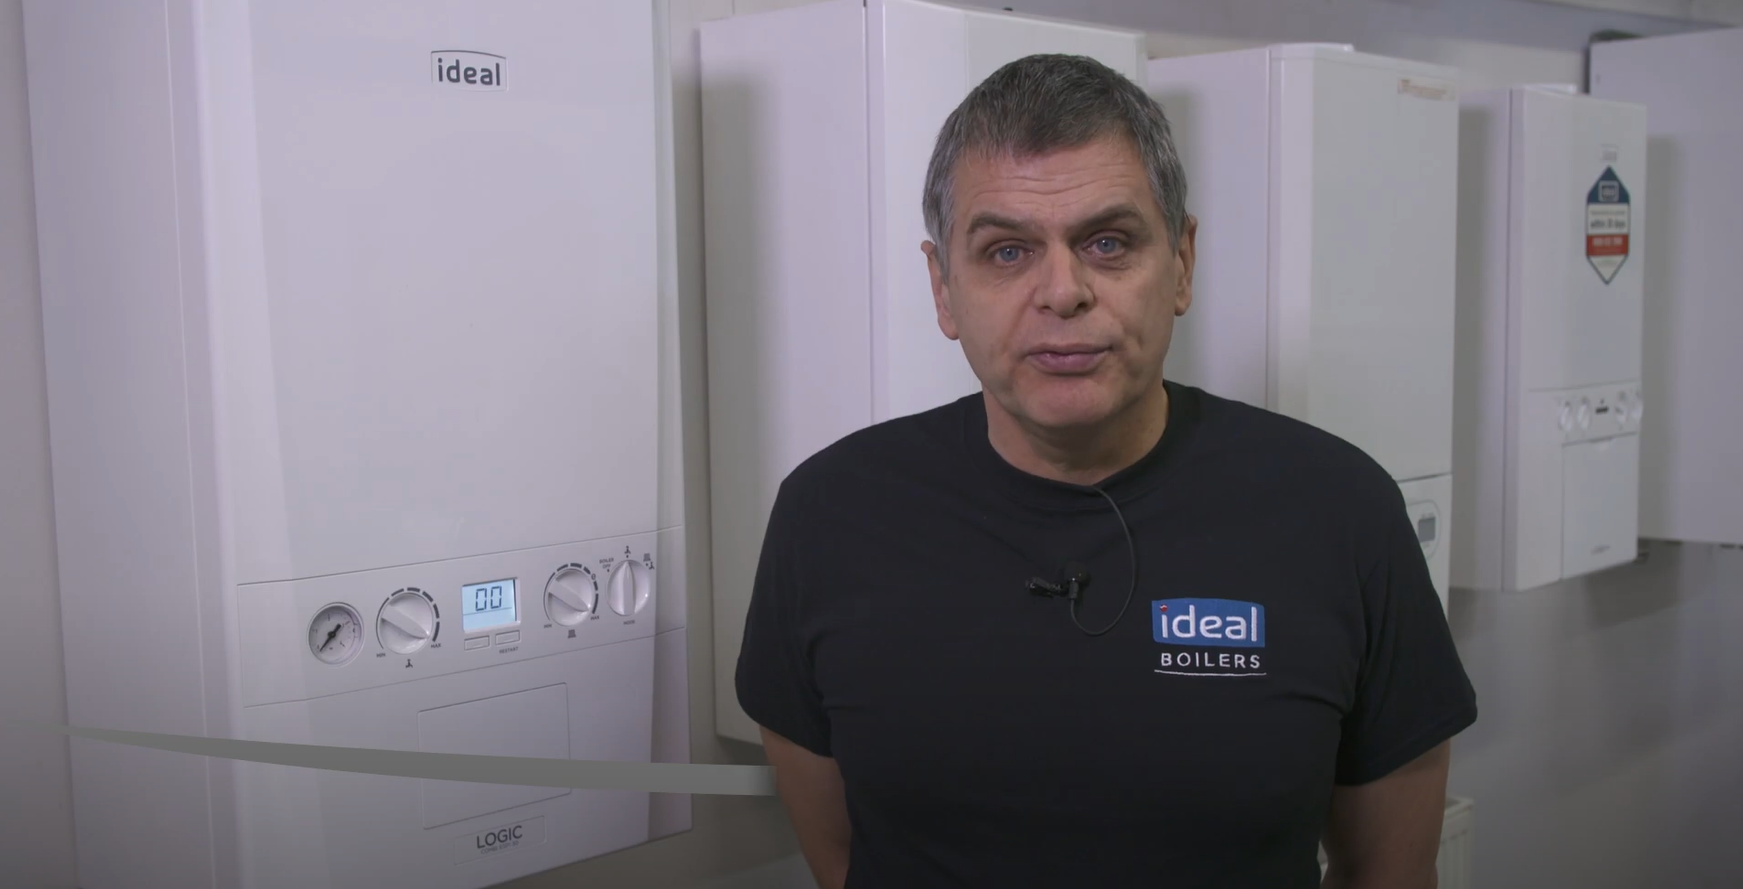 Common L & F Fault code on Ideal Boilers